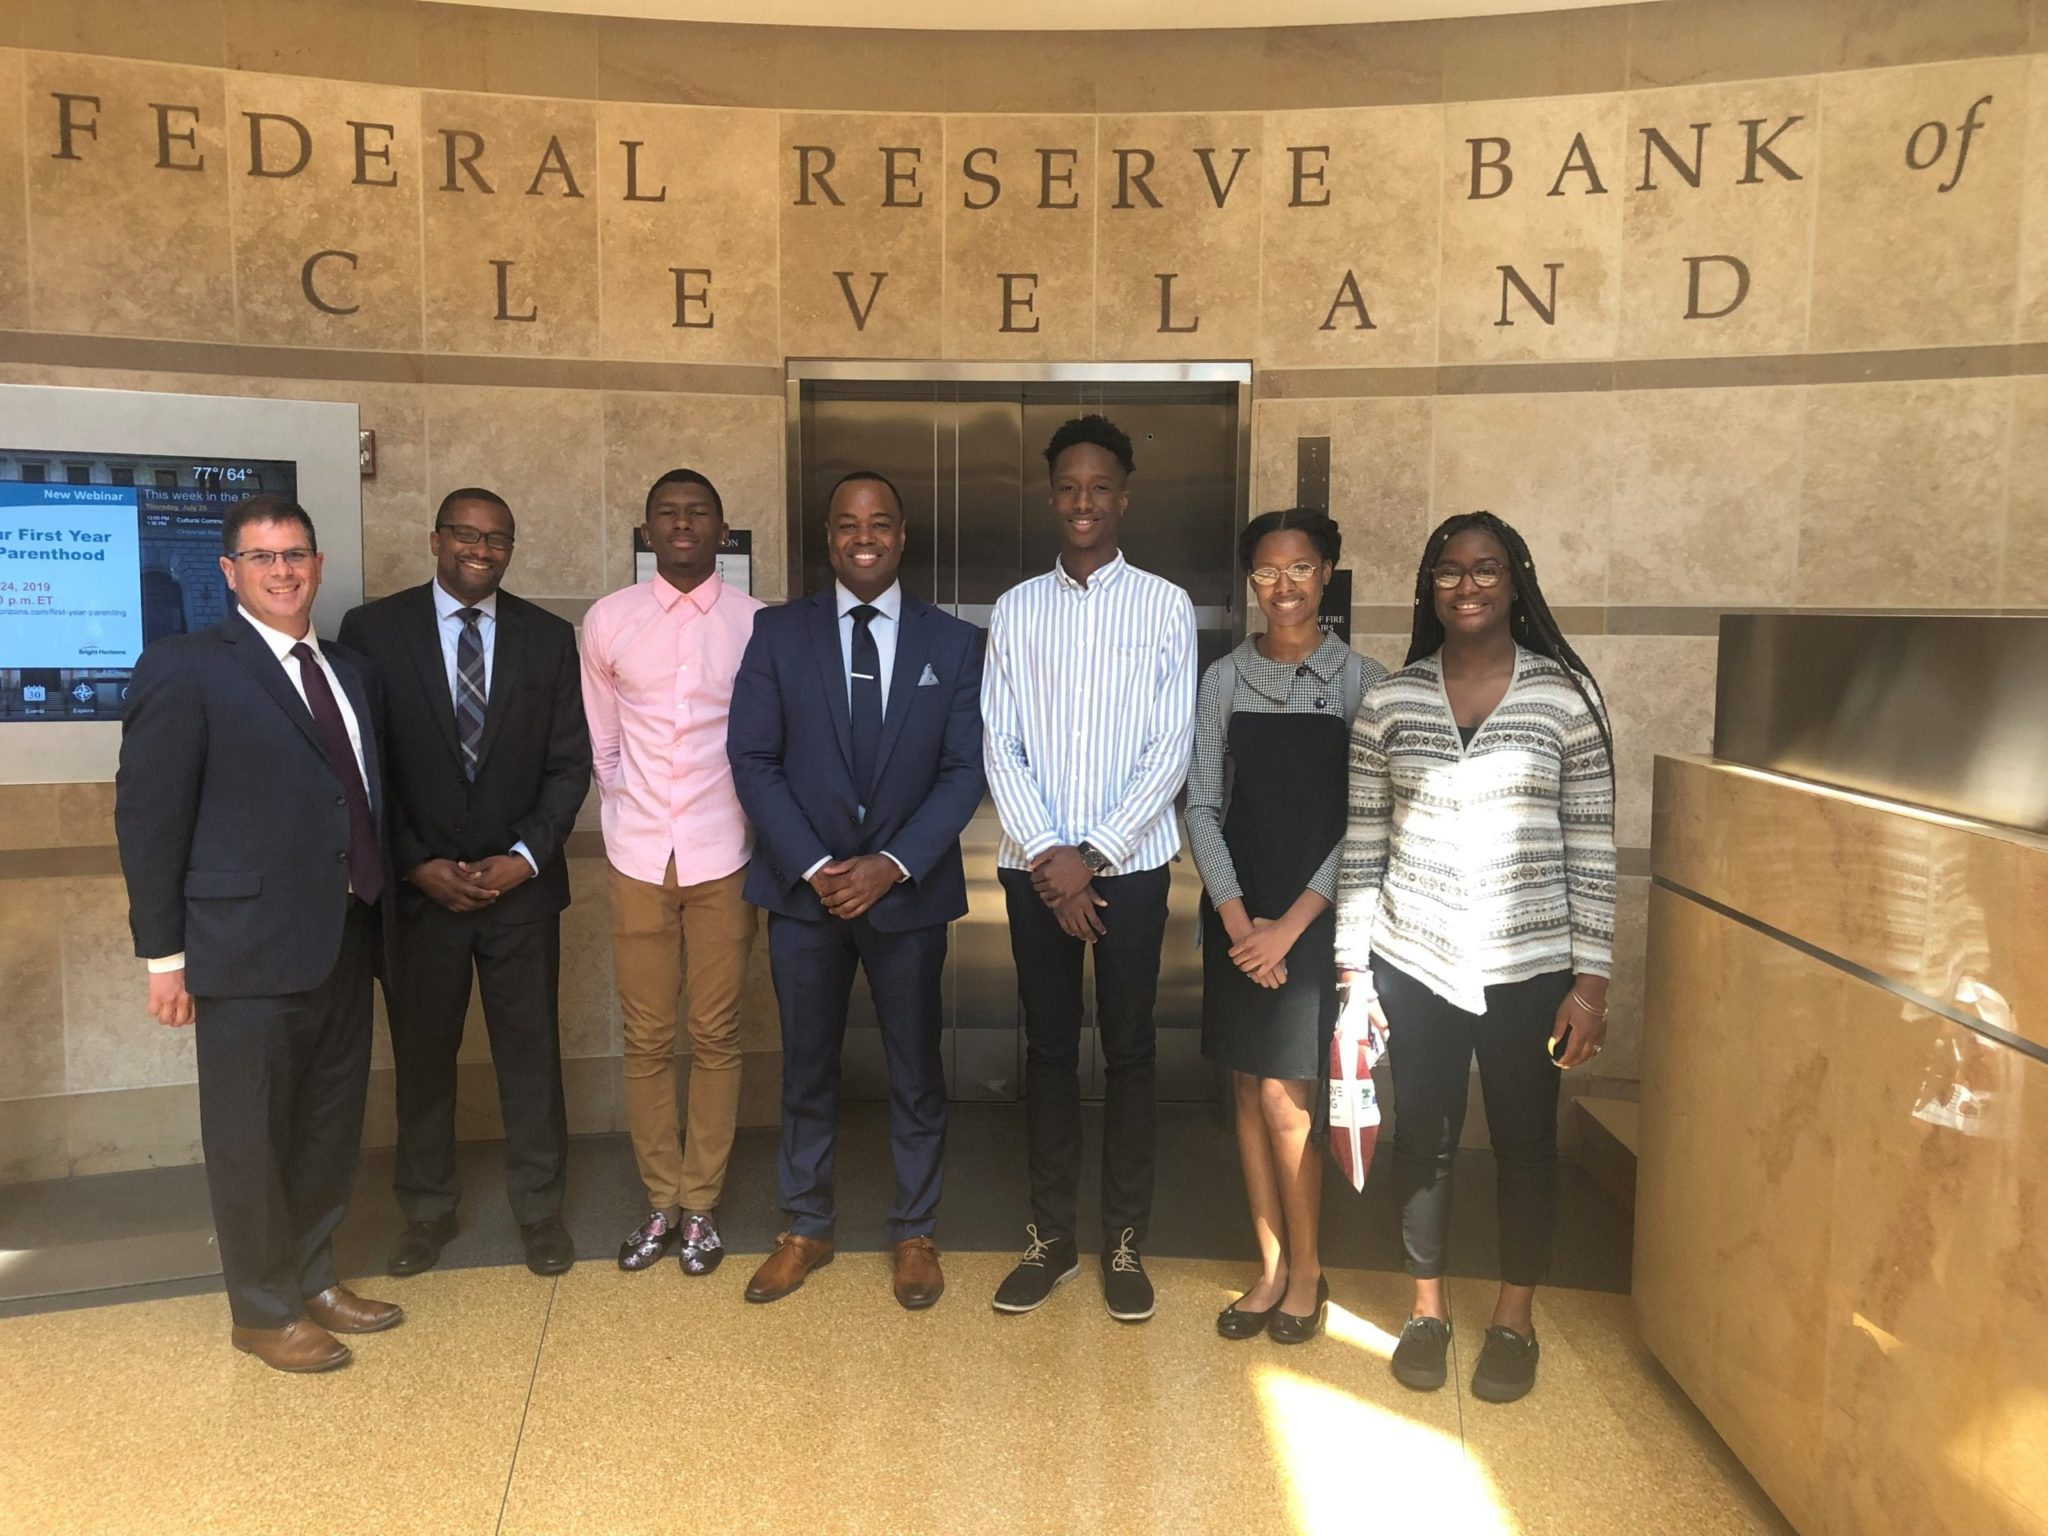 Future Connections - Federal Reserve - Tour 21 - Group Picture